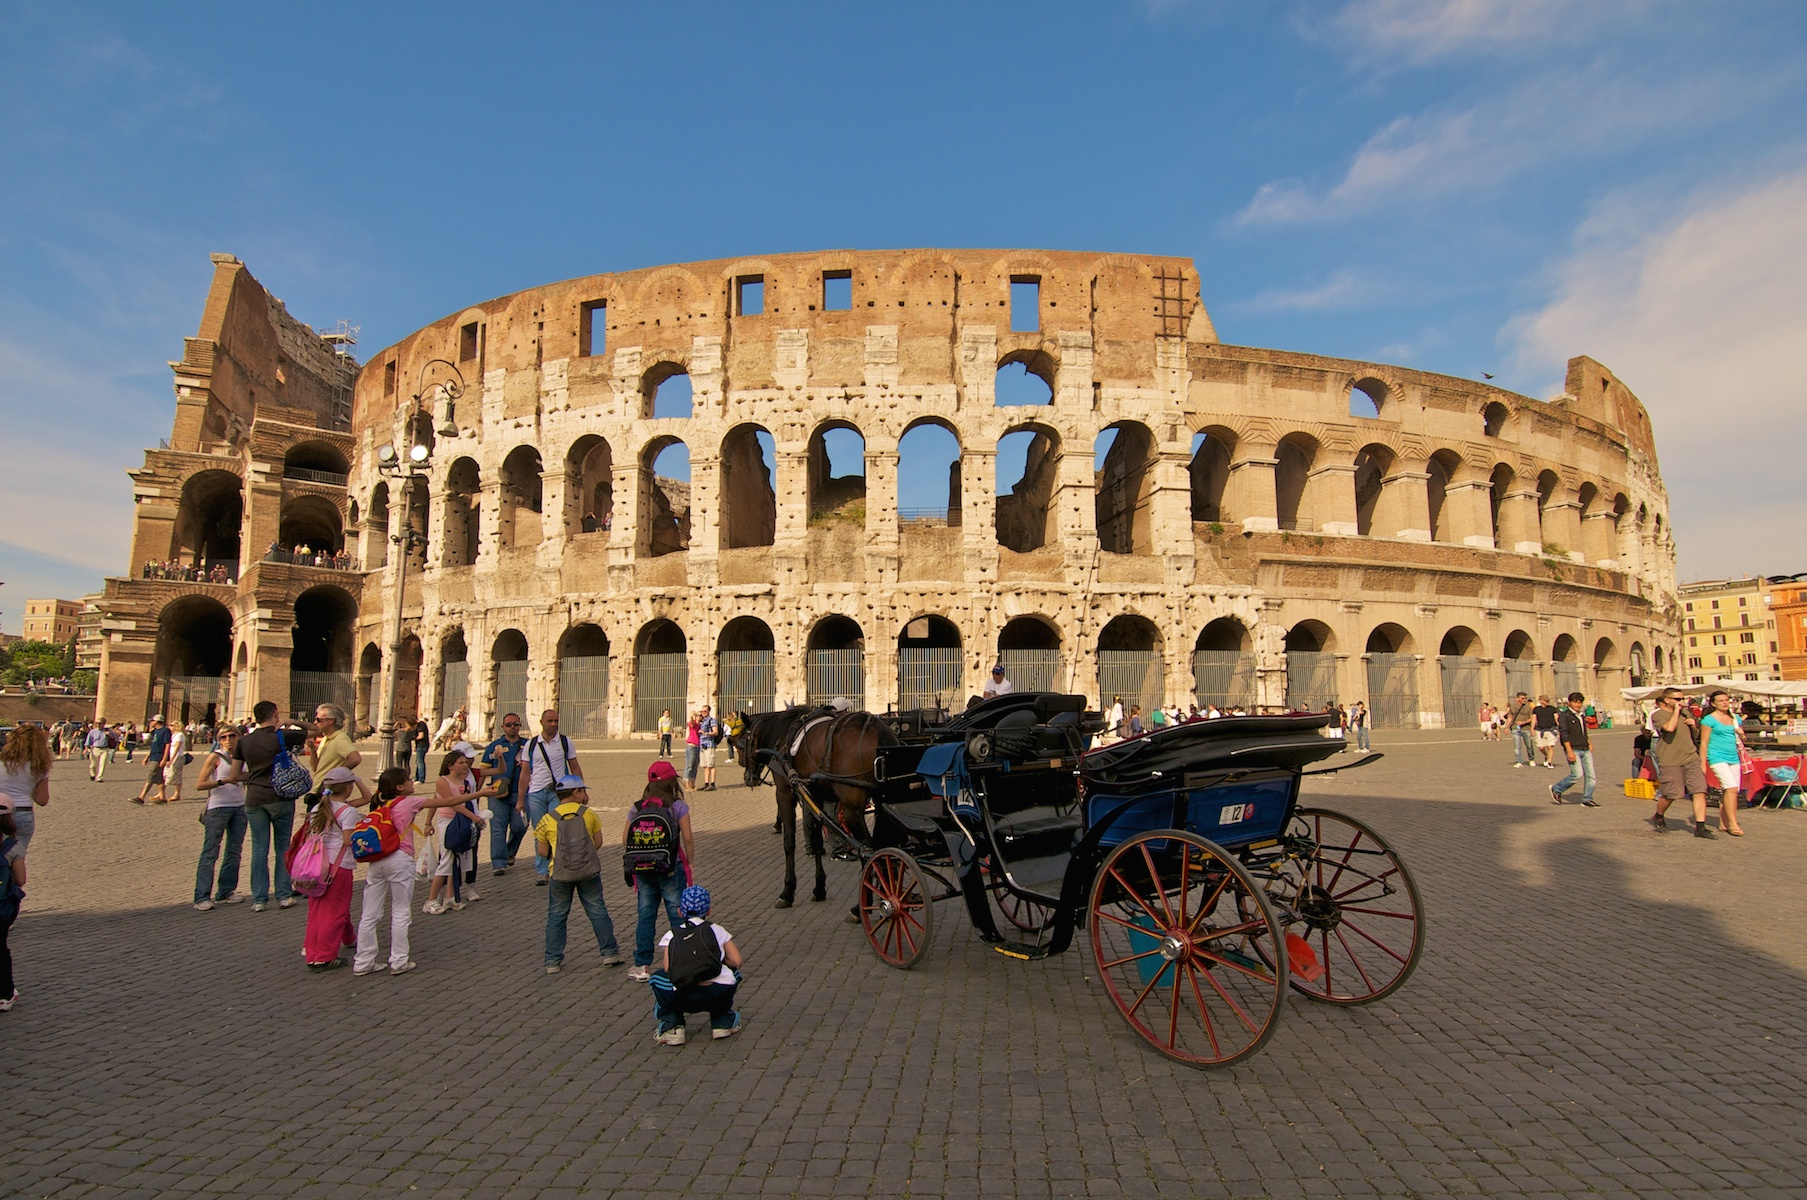 Coliseum with tourist carriage